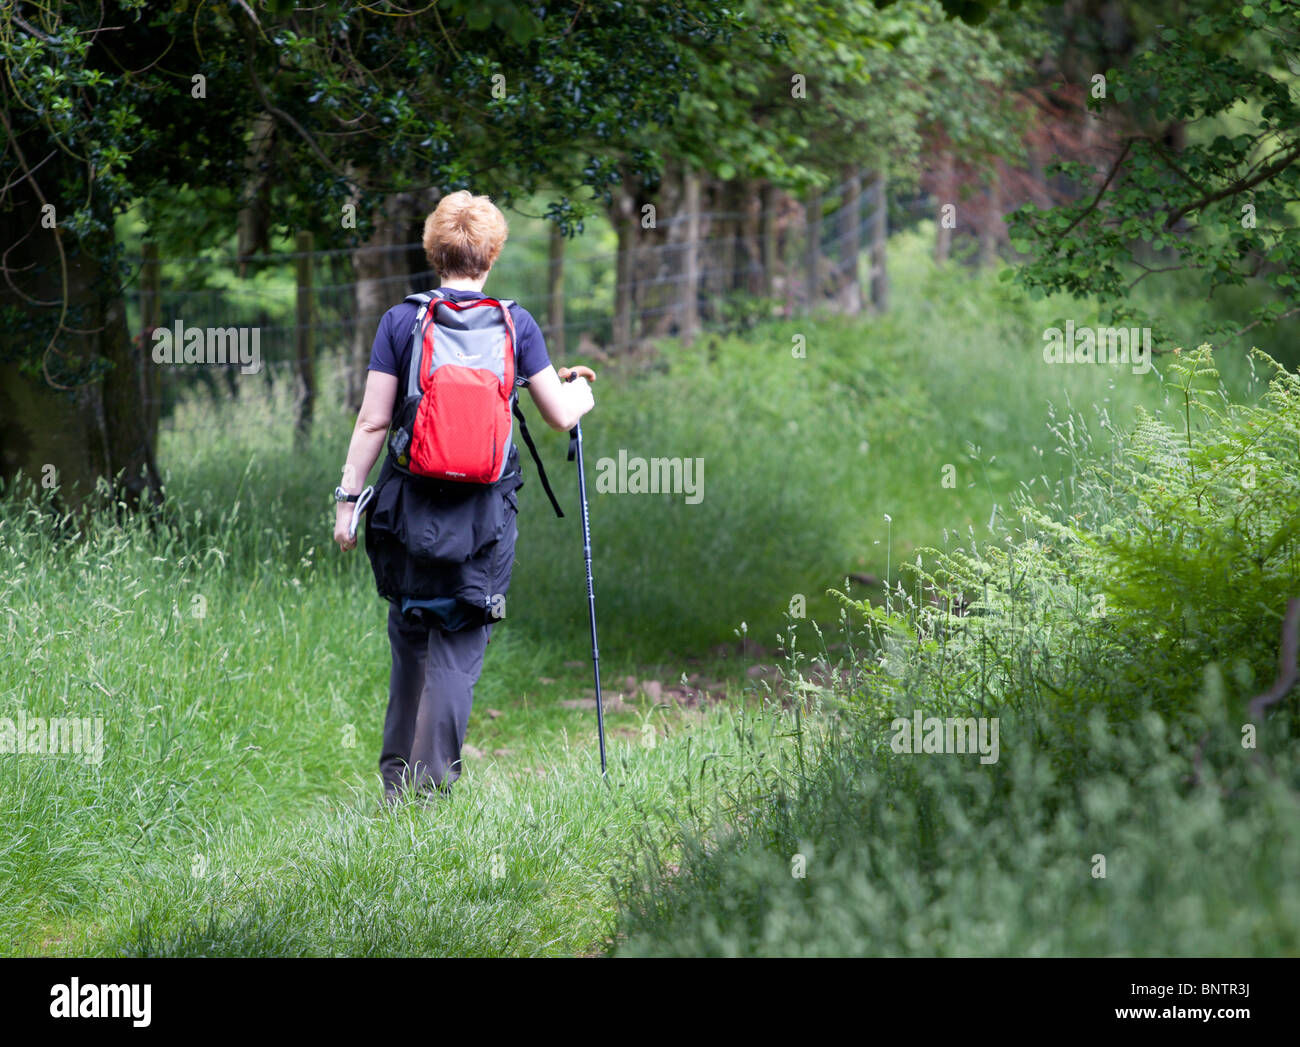 A female rambler/hiker walking along a grass track through a field in the Brecon Beacons, Wales, UK - Stock Image